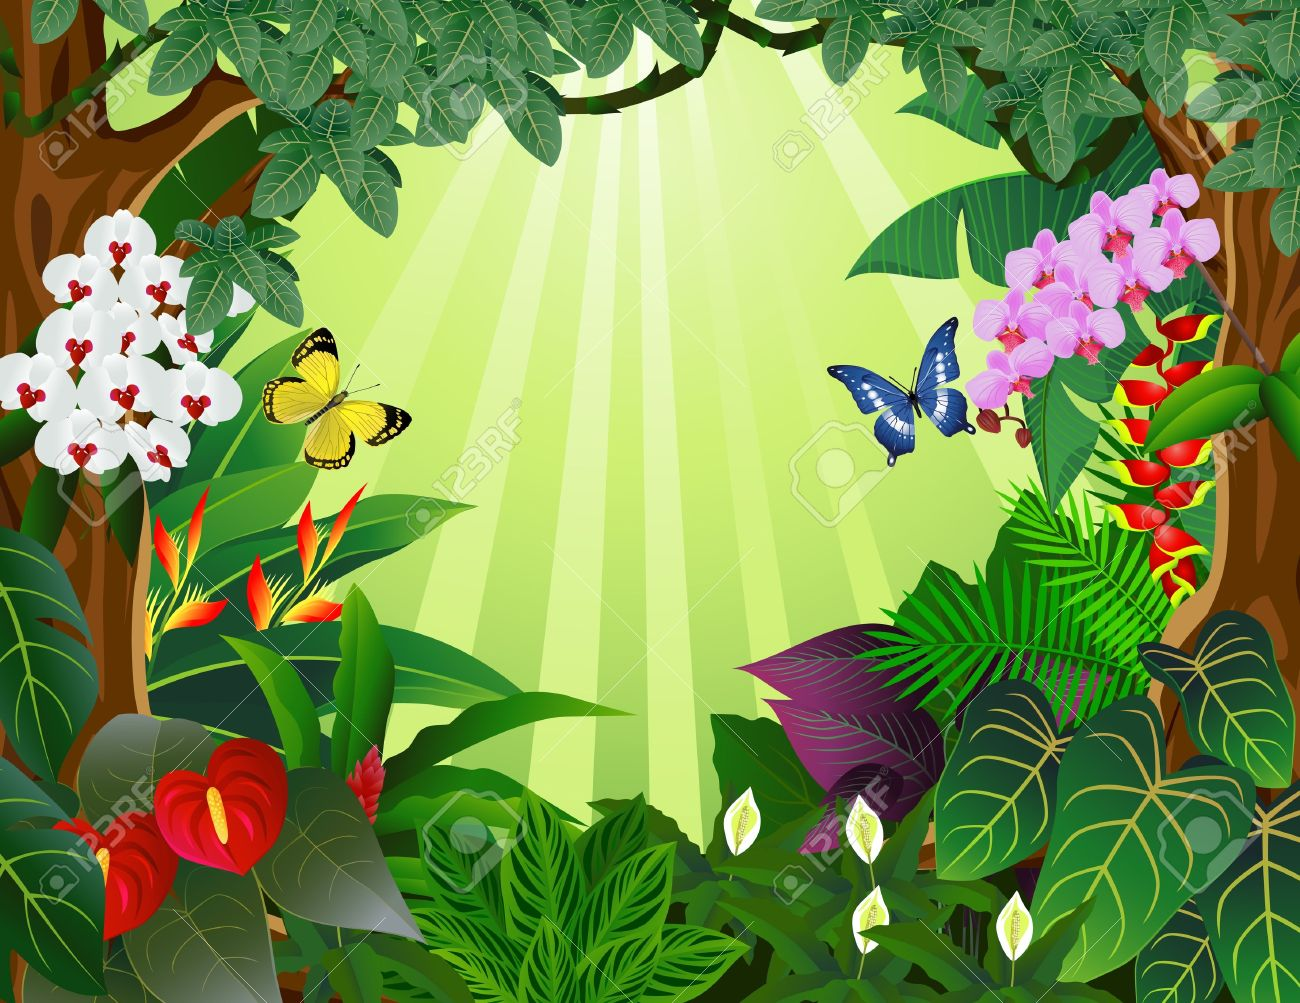 Rainforest Clipart & Rainforest Clip Art Images.